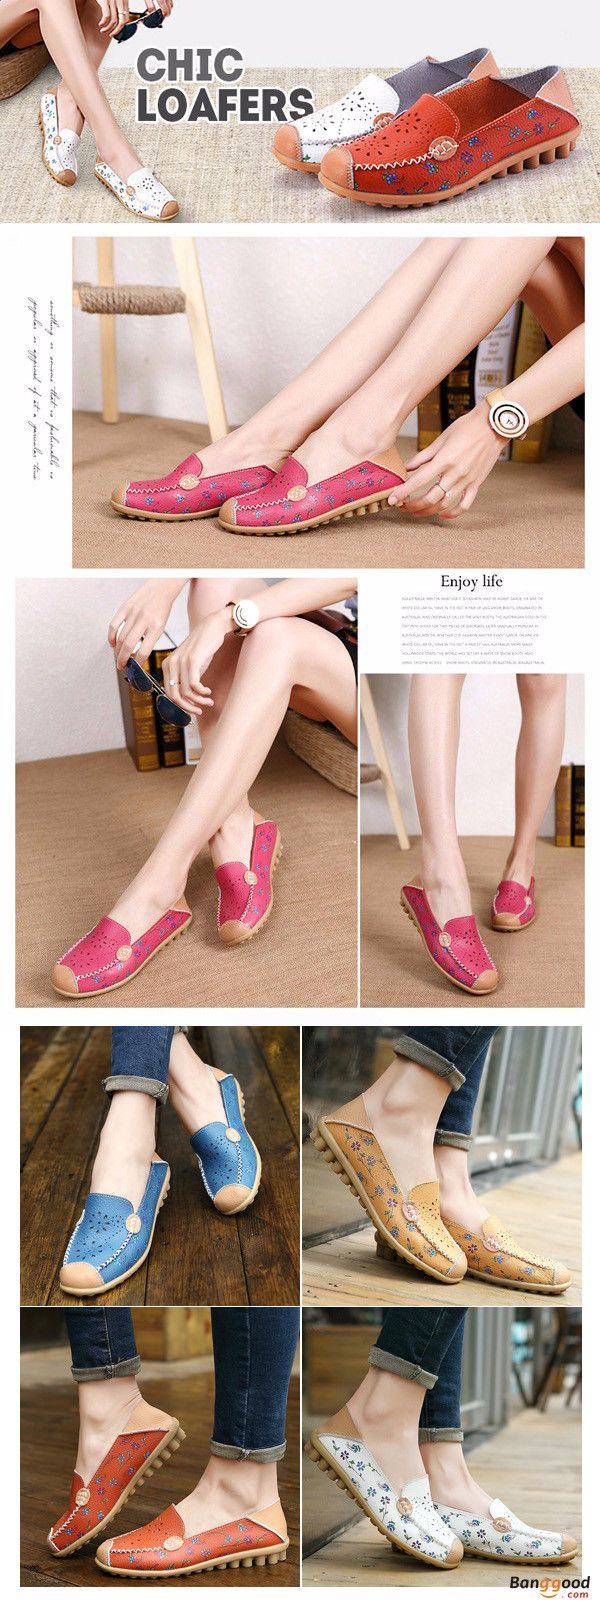 US$22.72+Free shipping. Size(US): 5~10. Summer Sandals, Women Flat Sandals, shoes flats, shoes sandals, Casual, Outdoor, Comfortable. Color: White, Orange, Rose Red, Blue, Yellow. Upper Material: Cow Split Leather. Outsole Material: Rubber. Heel Height: About 1.5cm. Platform Height: About 1.5cm. Love style.